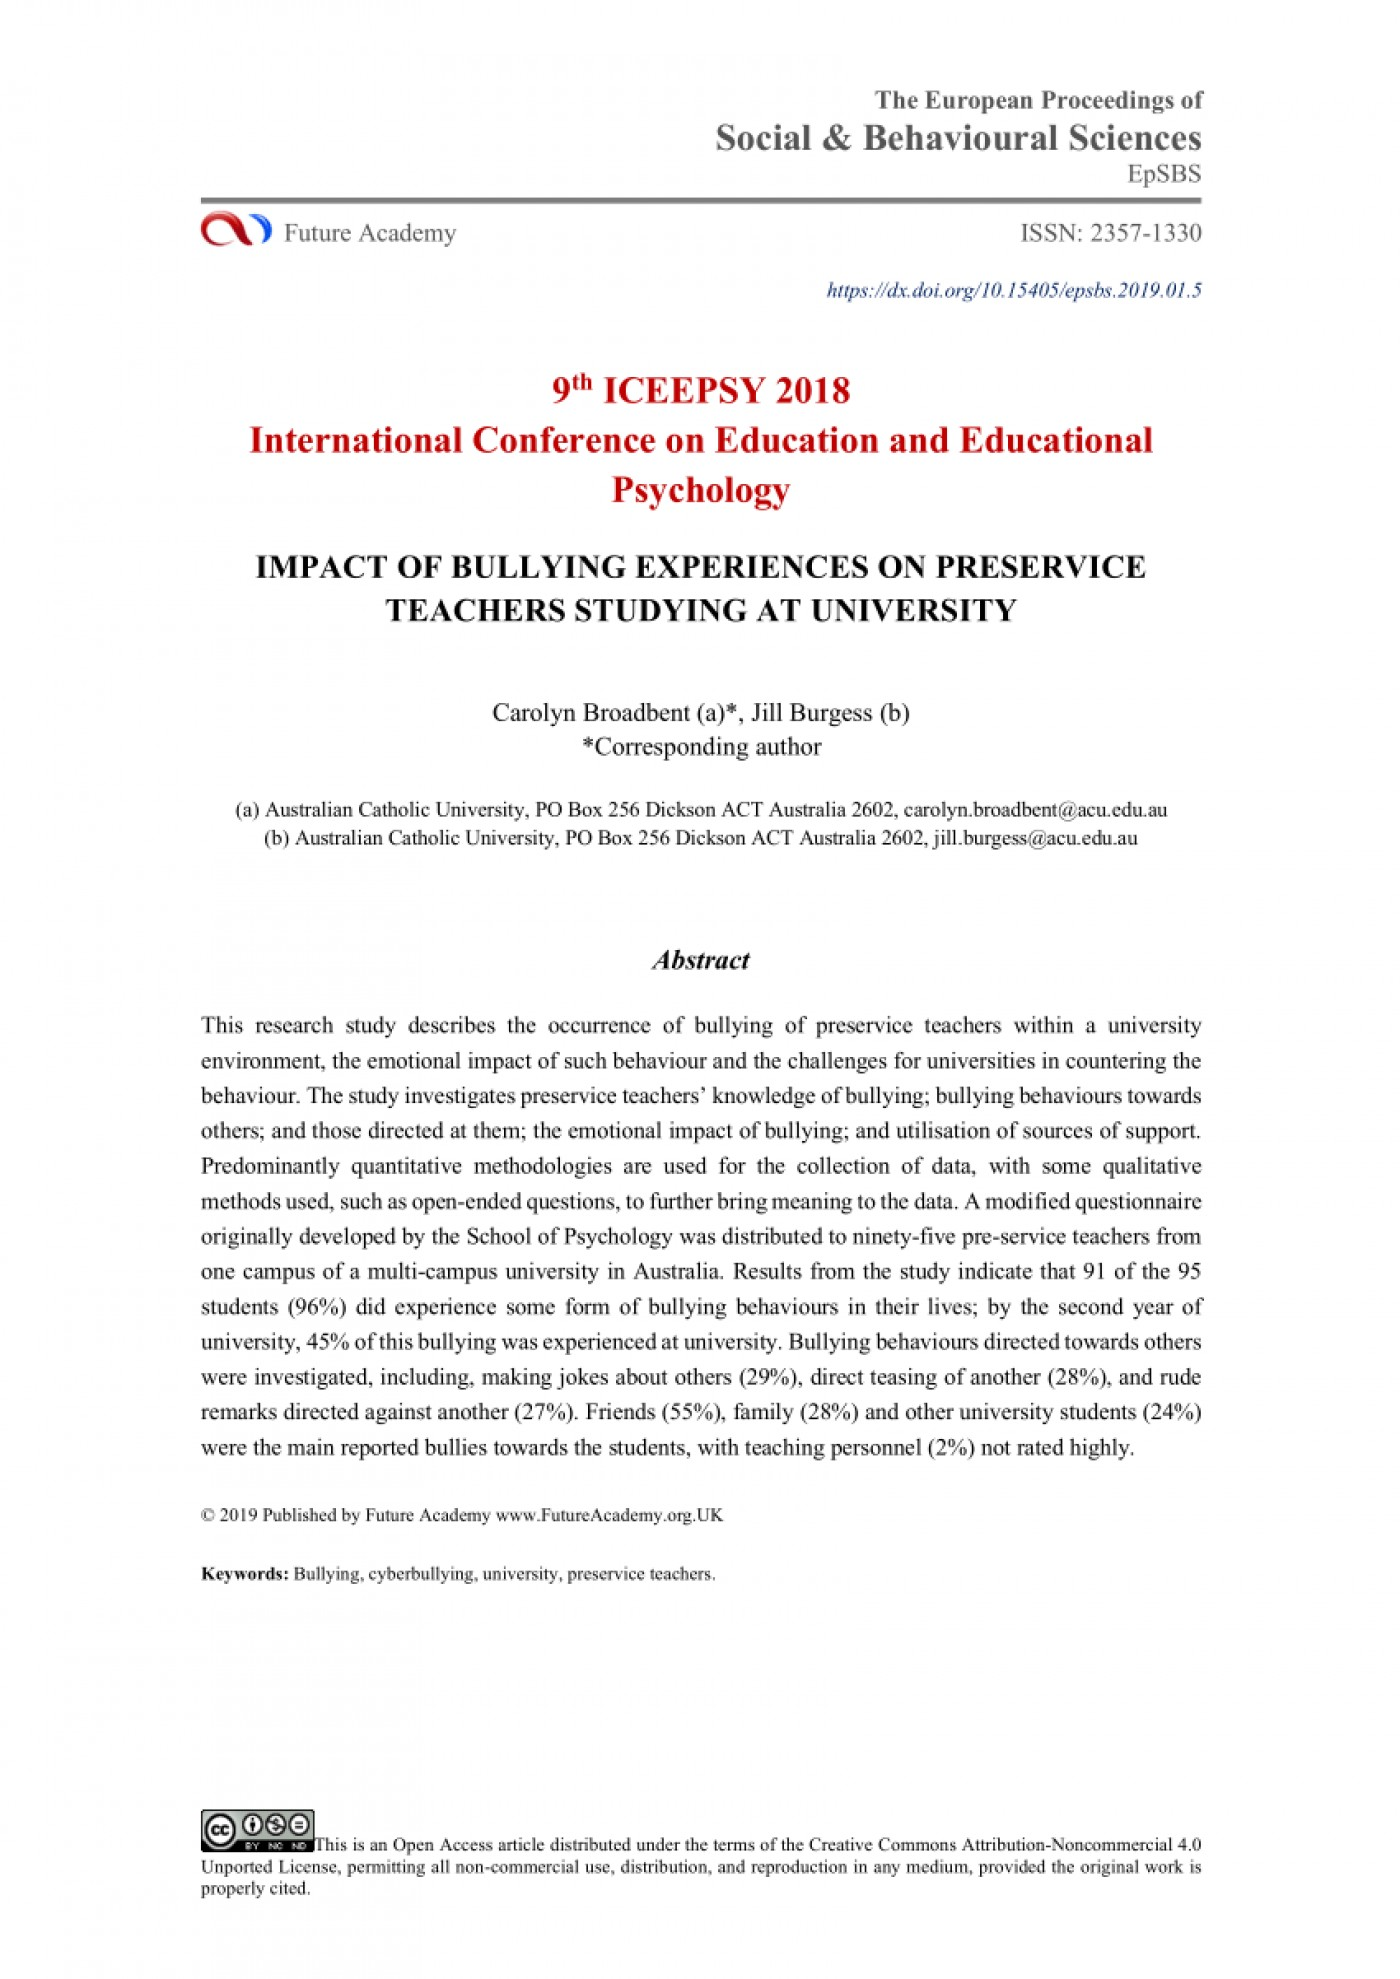 005 Research Paper Psychological Effects Of Bullying Breathtaking 1400